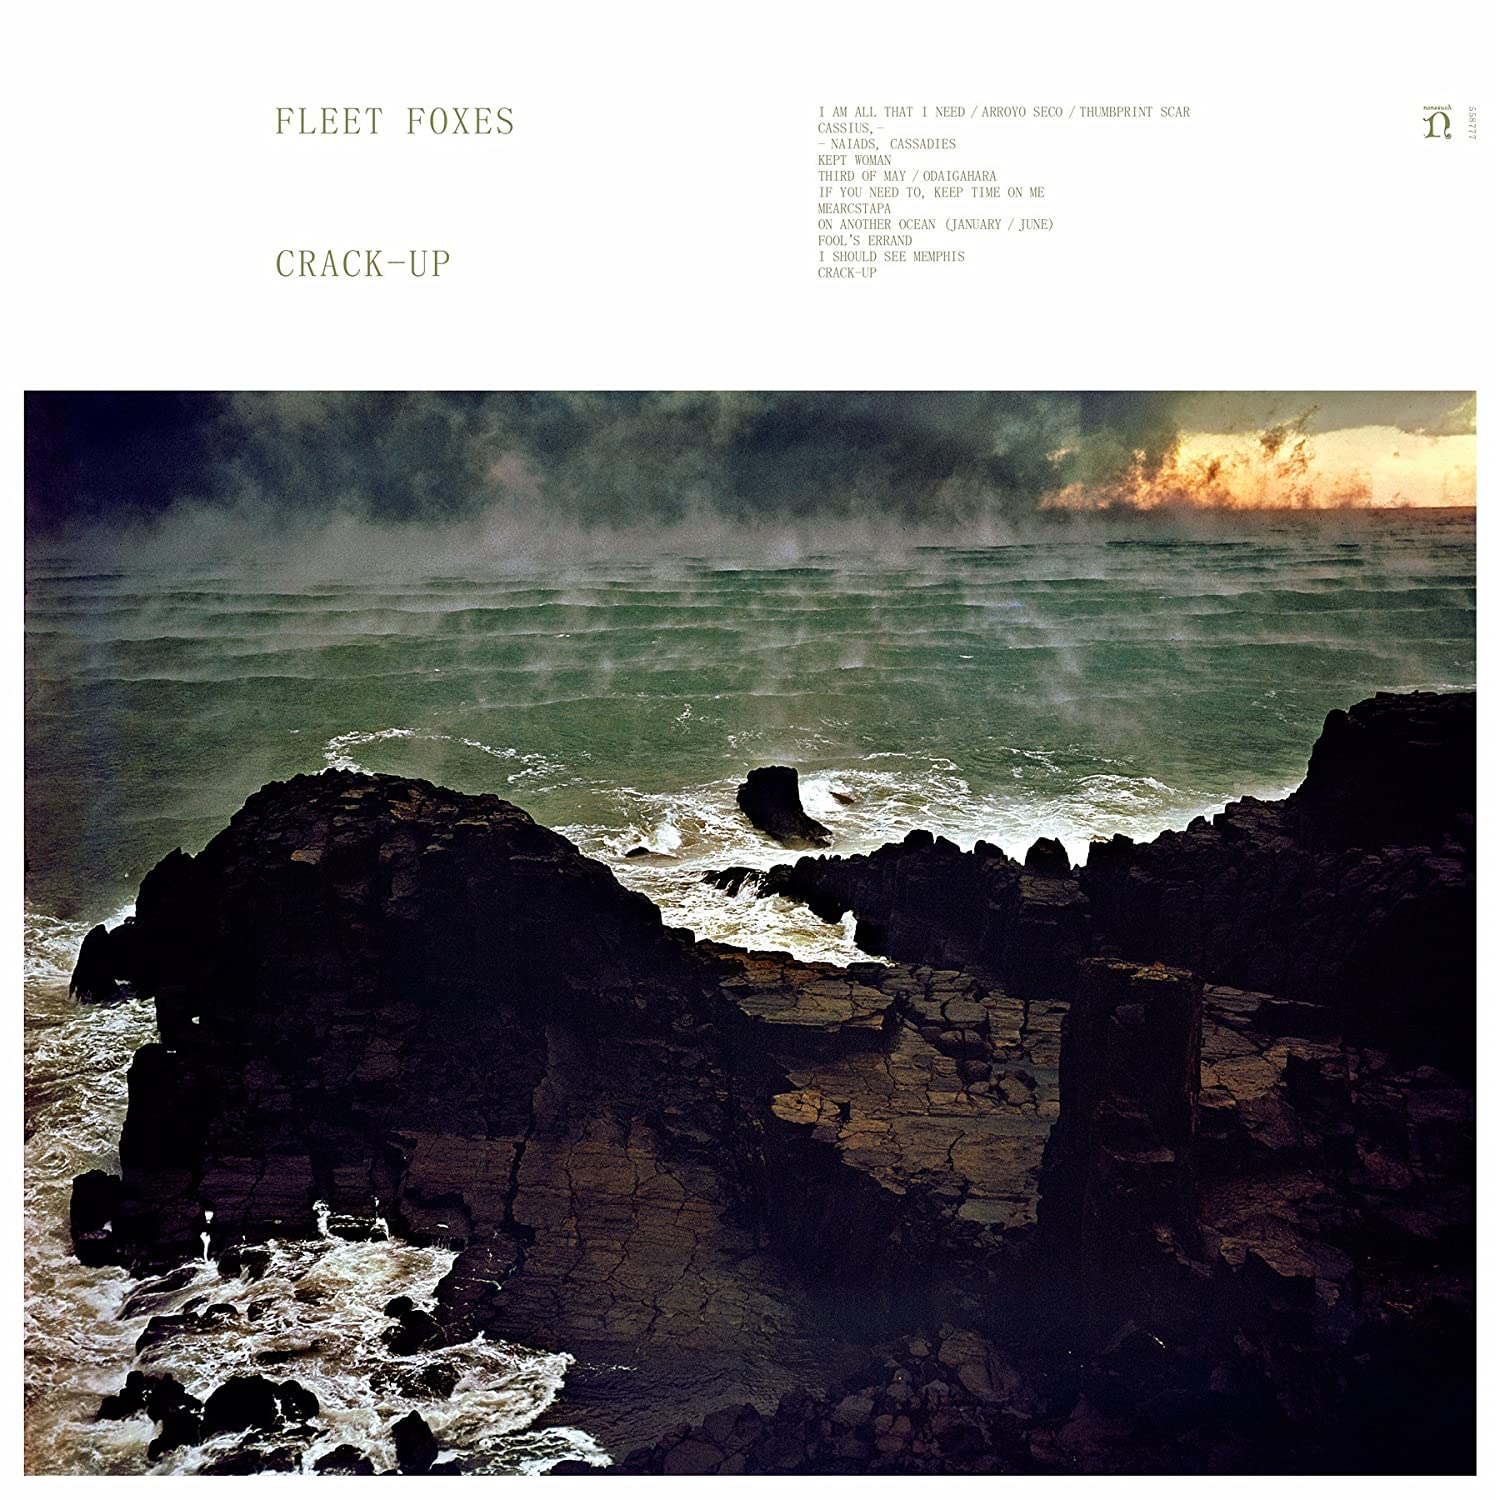 Fleet Foxes CrackUp Amazoncom Music - 20 funniest reviews ever written amazon 6 cracked